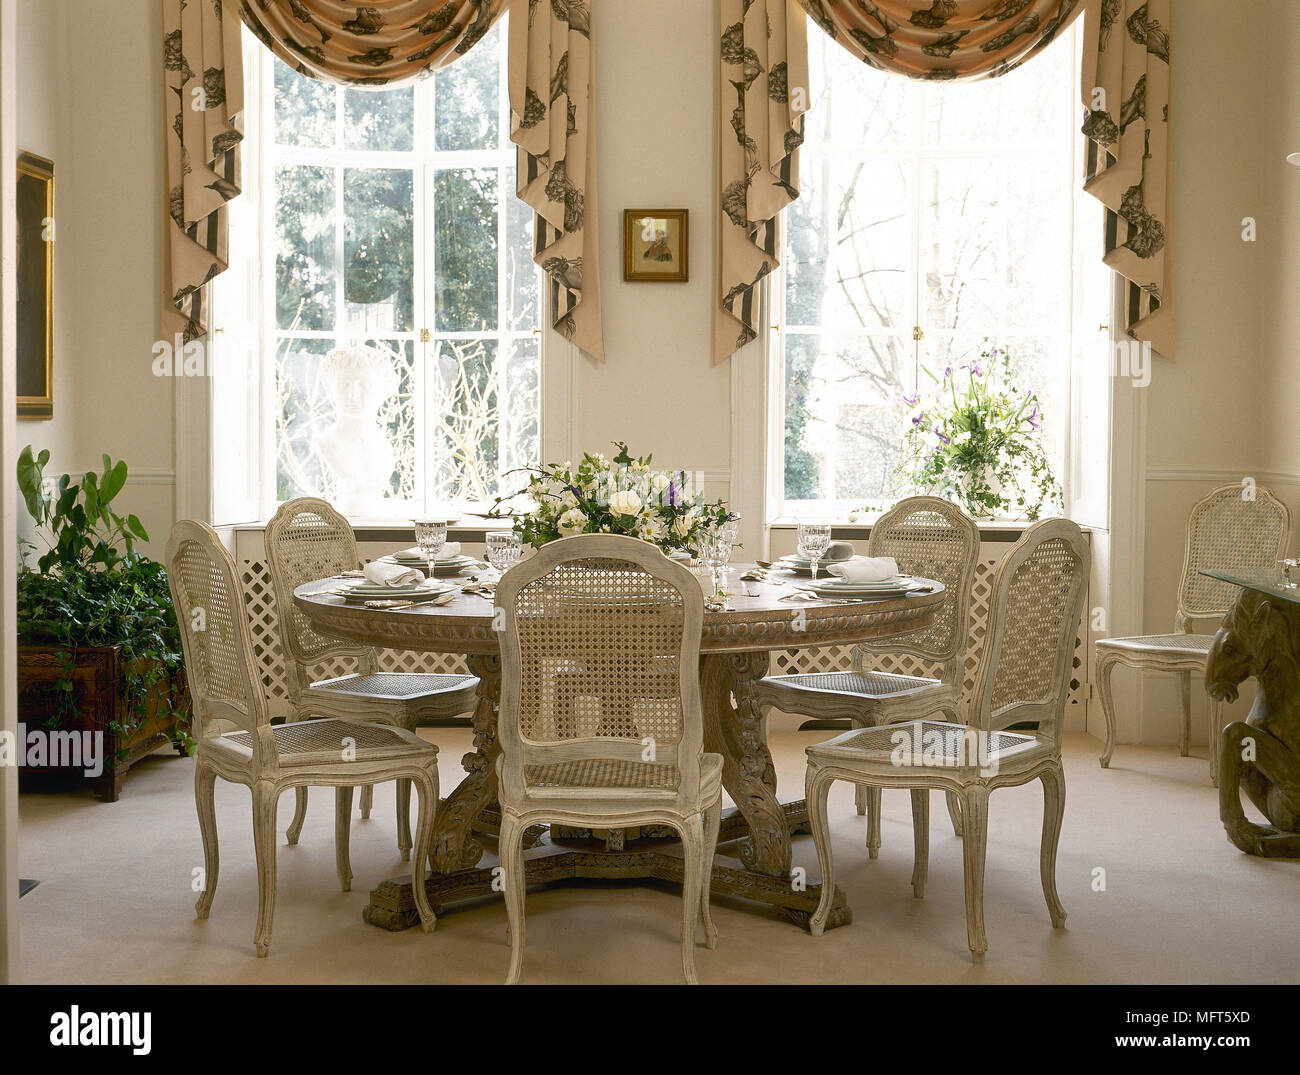 Incroyable A Traditional, Neutral Dining Room With Round Table, Painted Period Chairs, Swag  Curtains,